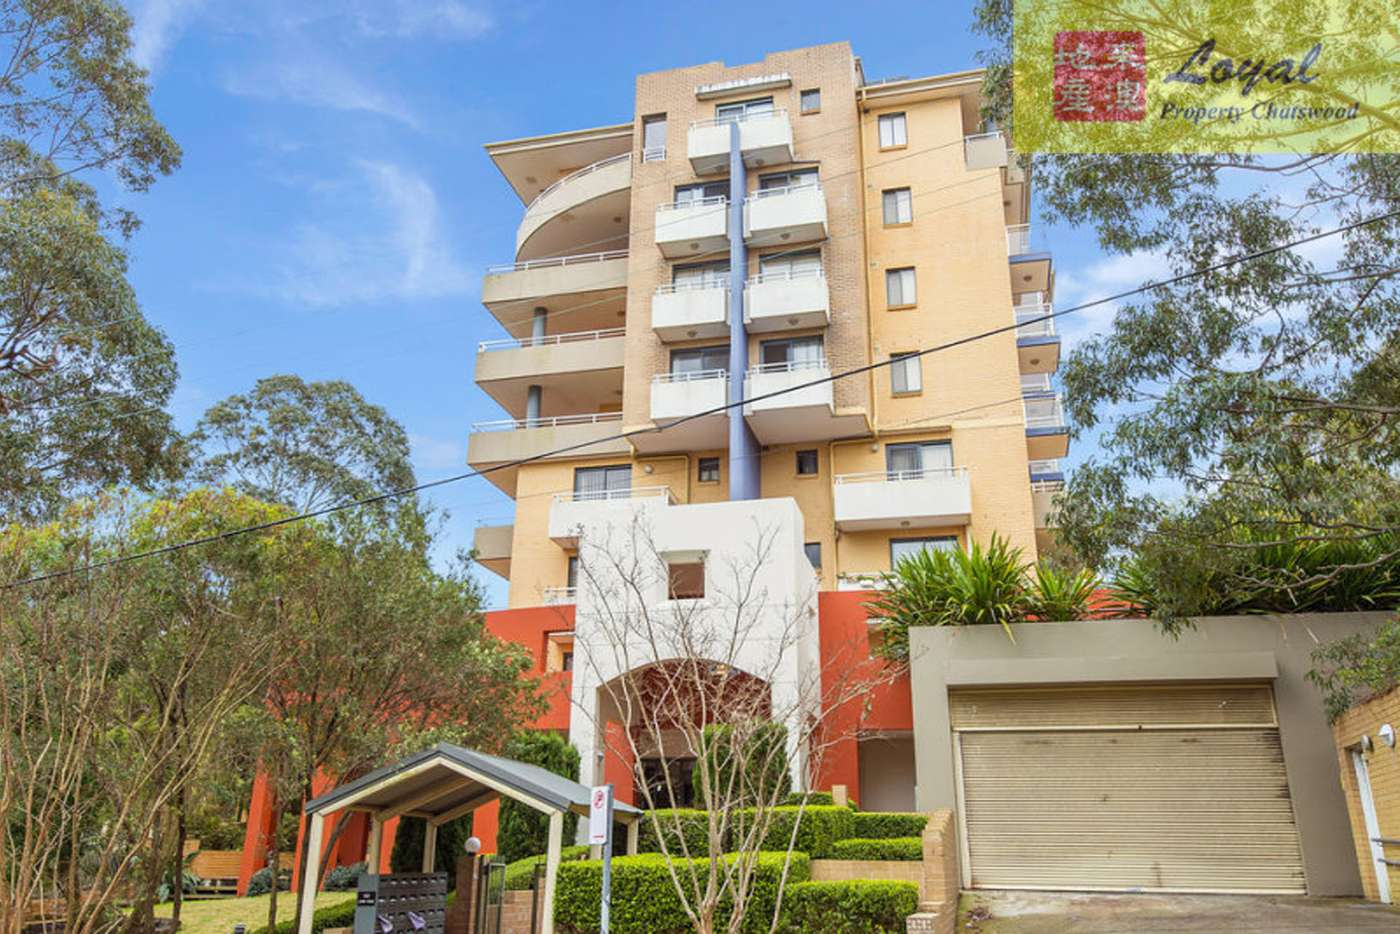 Main view of Homely apartment listing, 9/3 Freeman Road, Chatswood NSW 2067